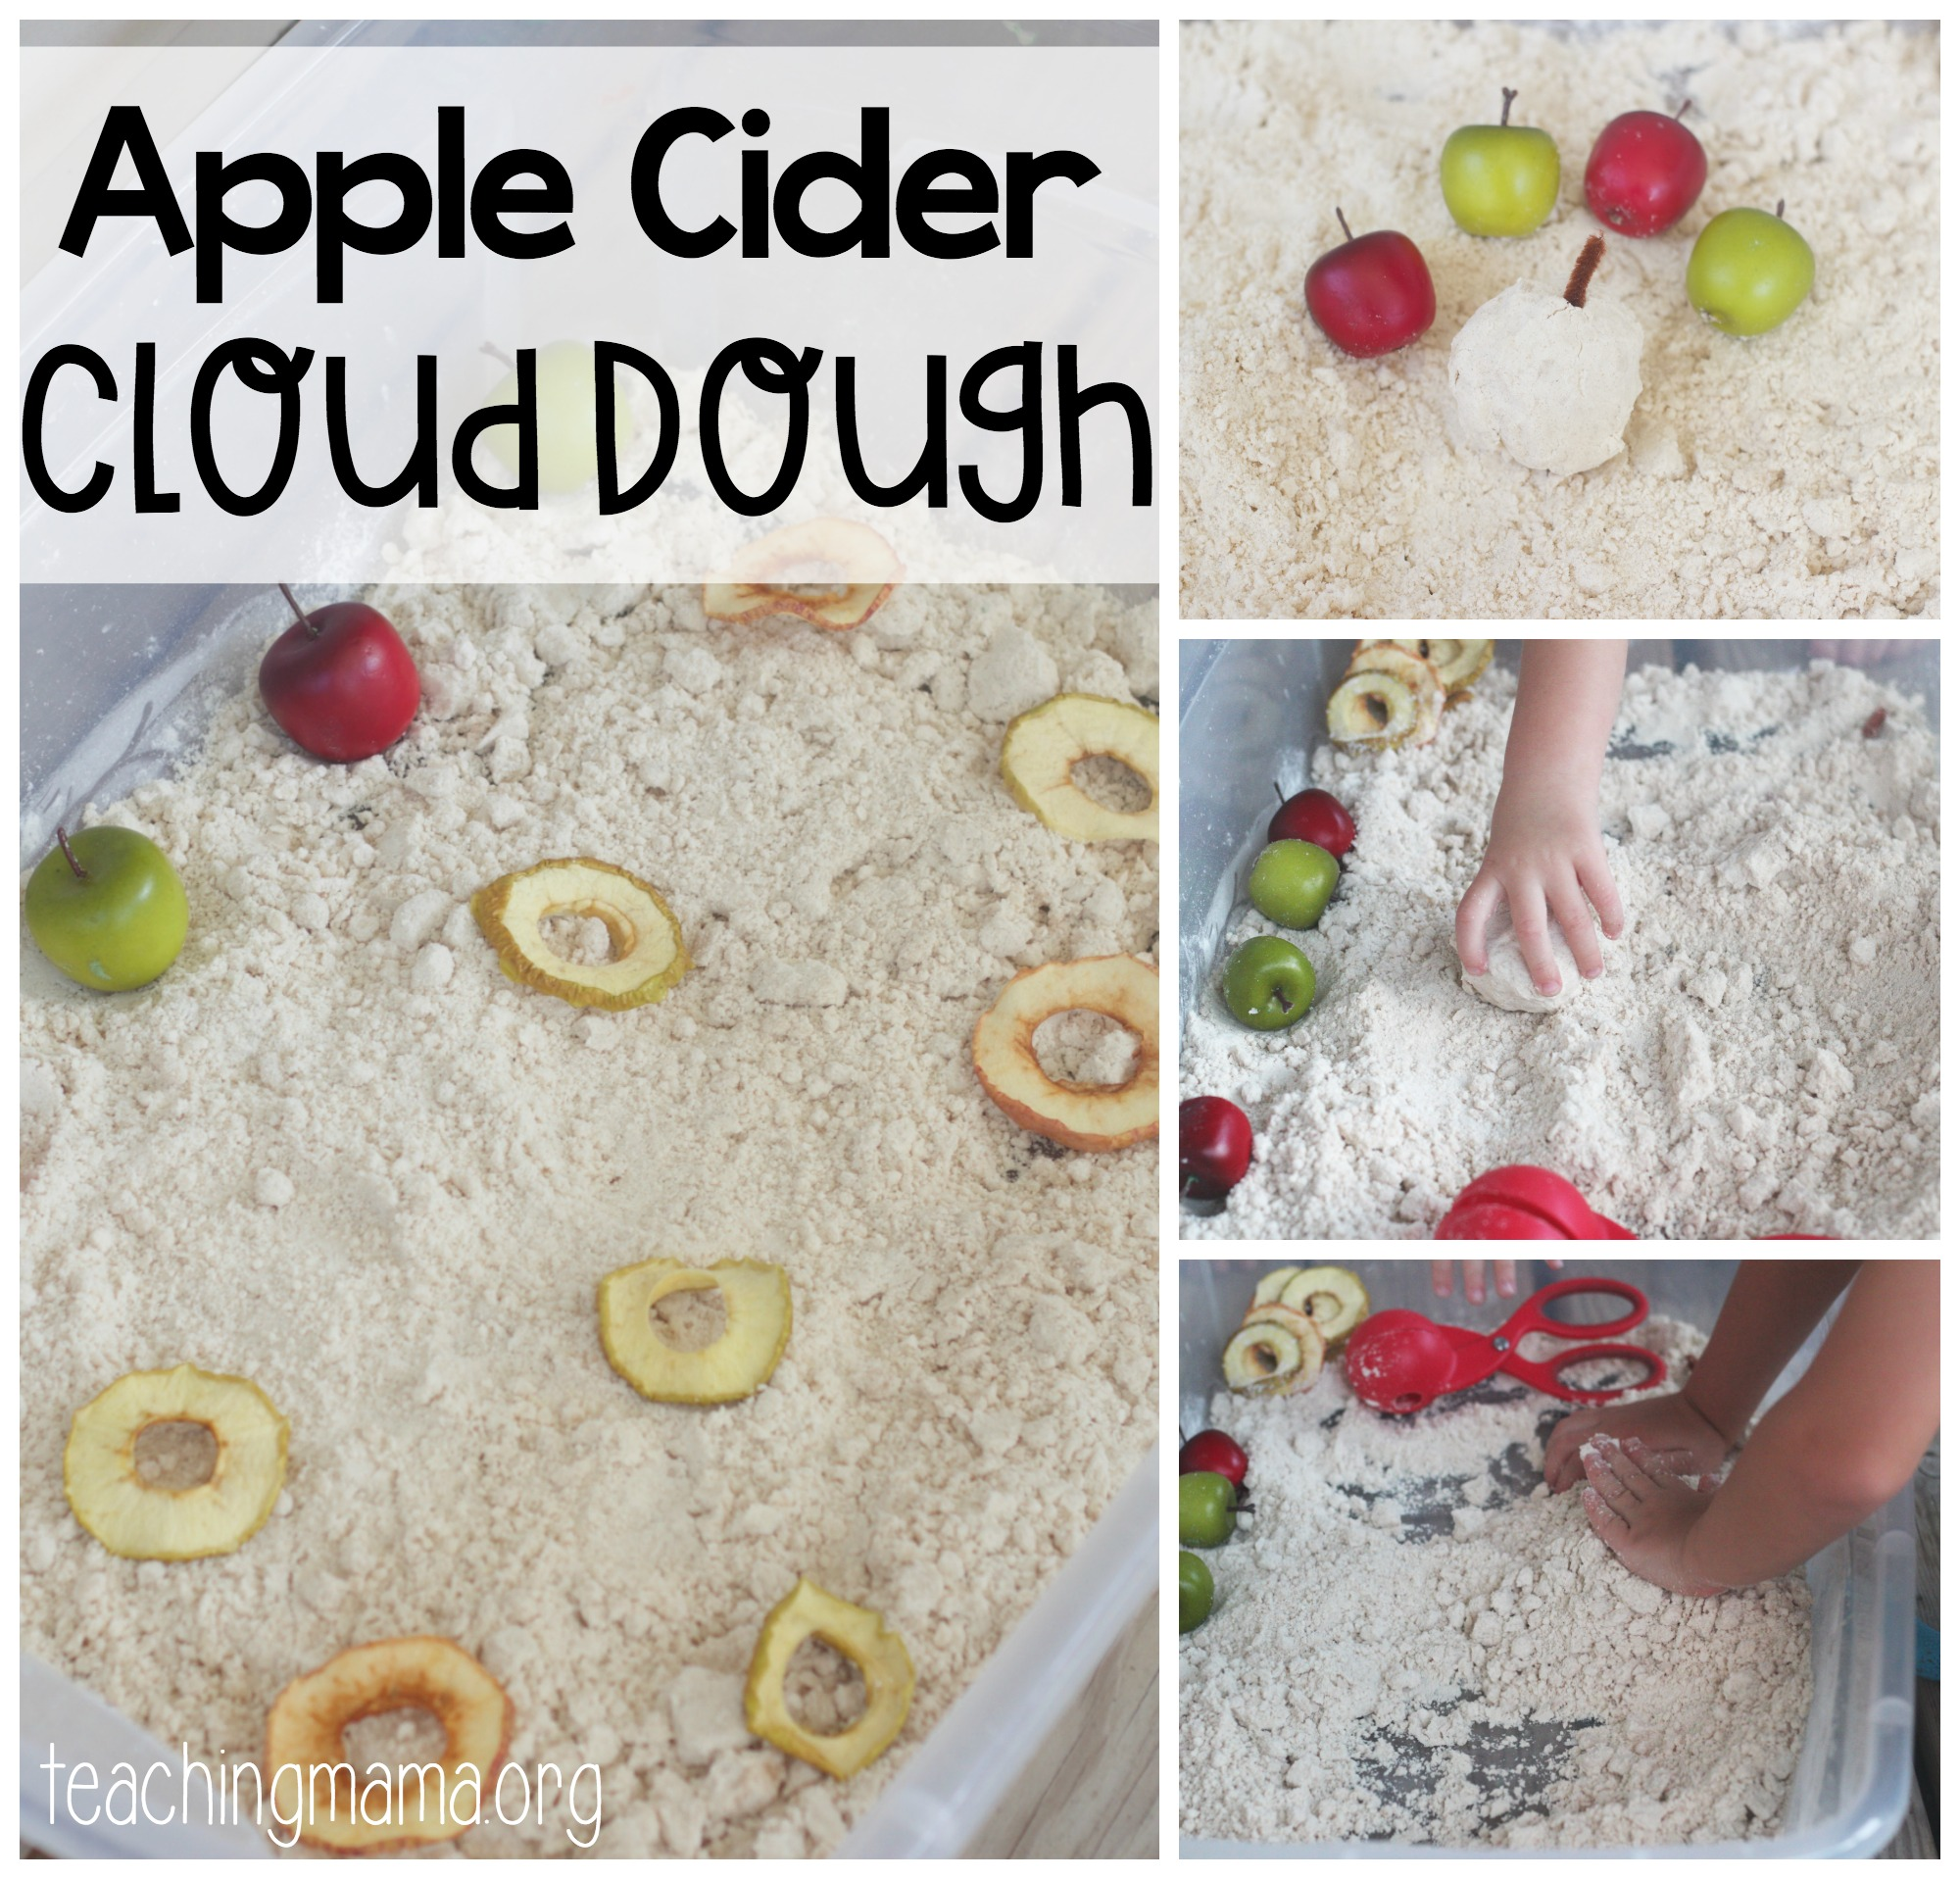 Apple Cider Cloud Dough - cfb